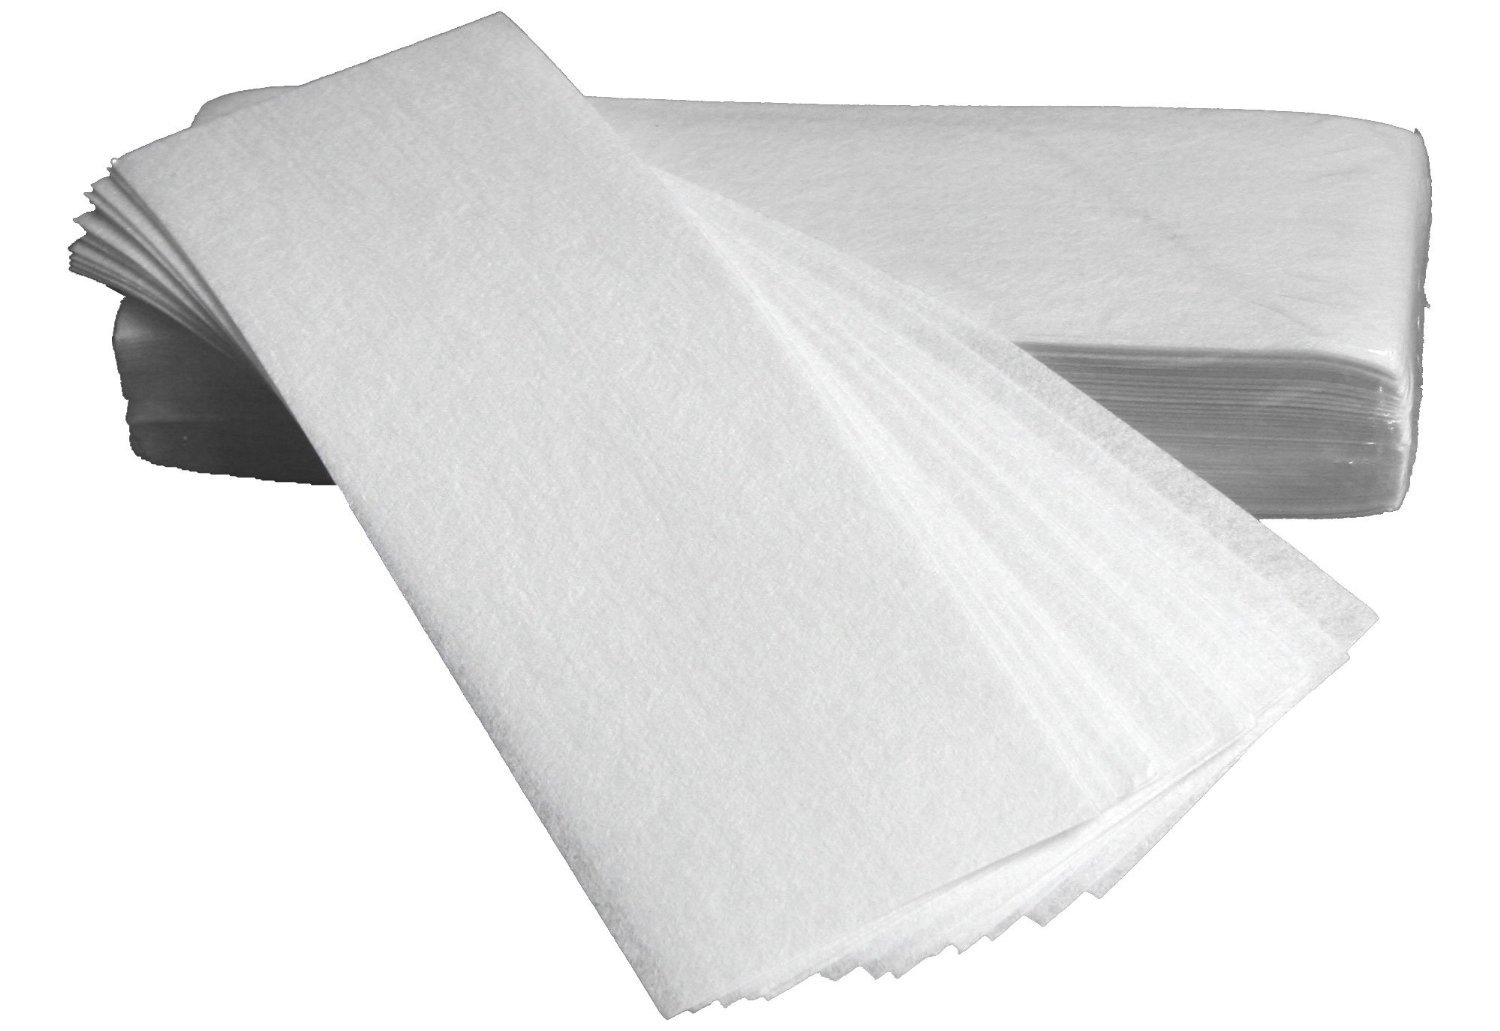 Paper Wax Waxing Strips - Pack of 100 (5 x 100) essentialbeautycare